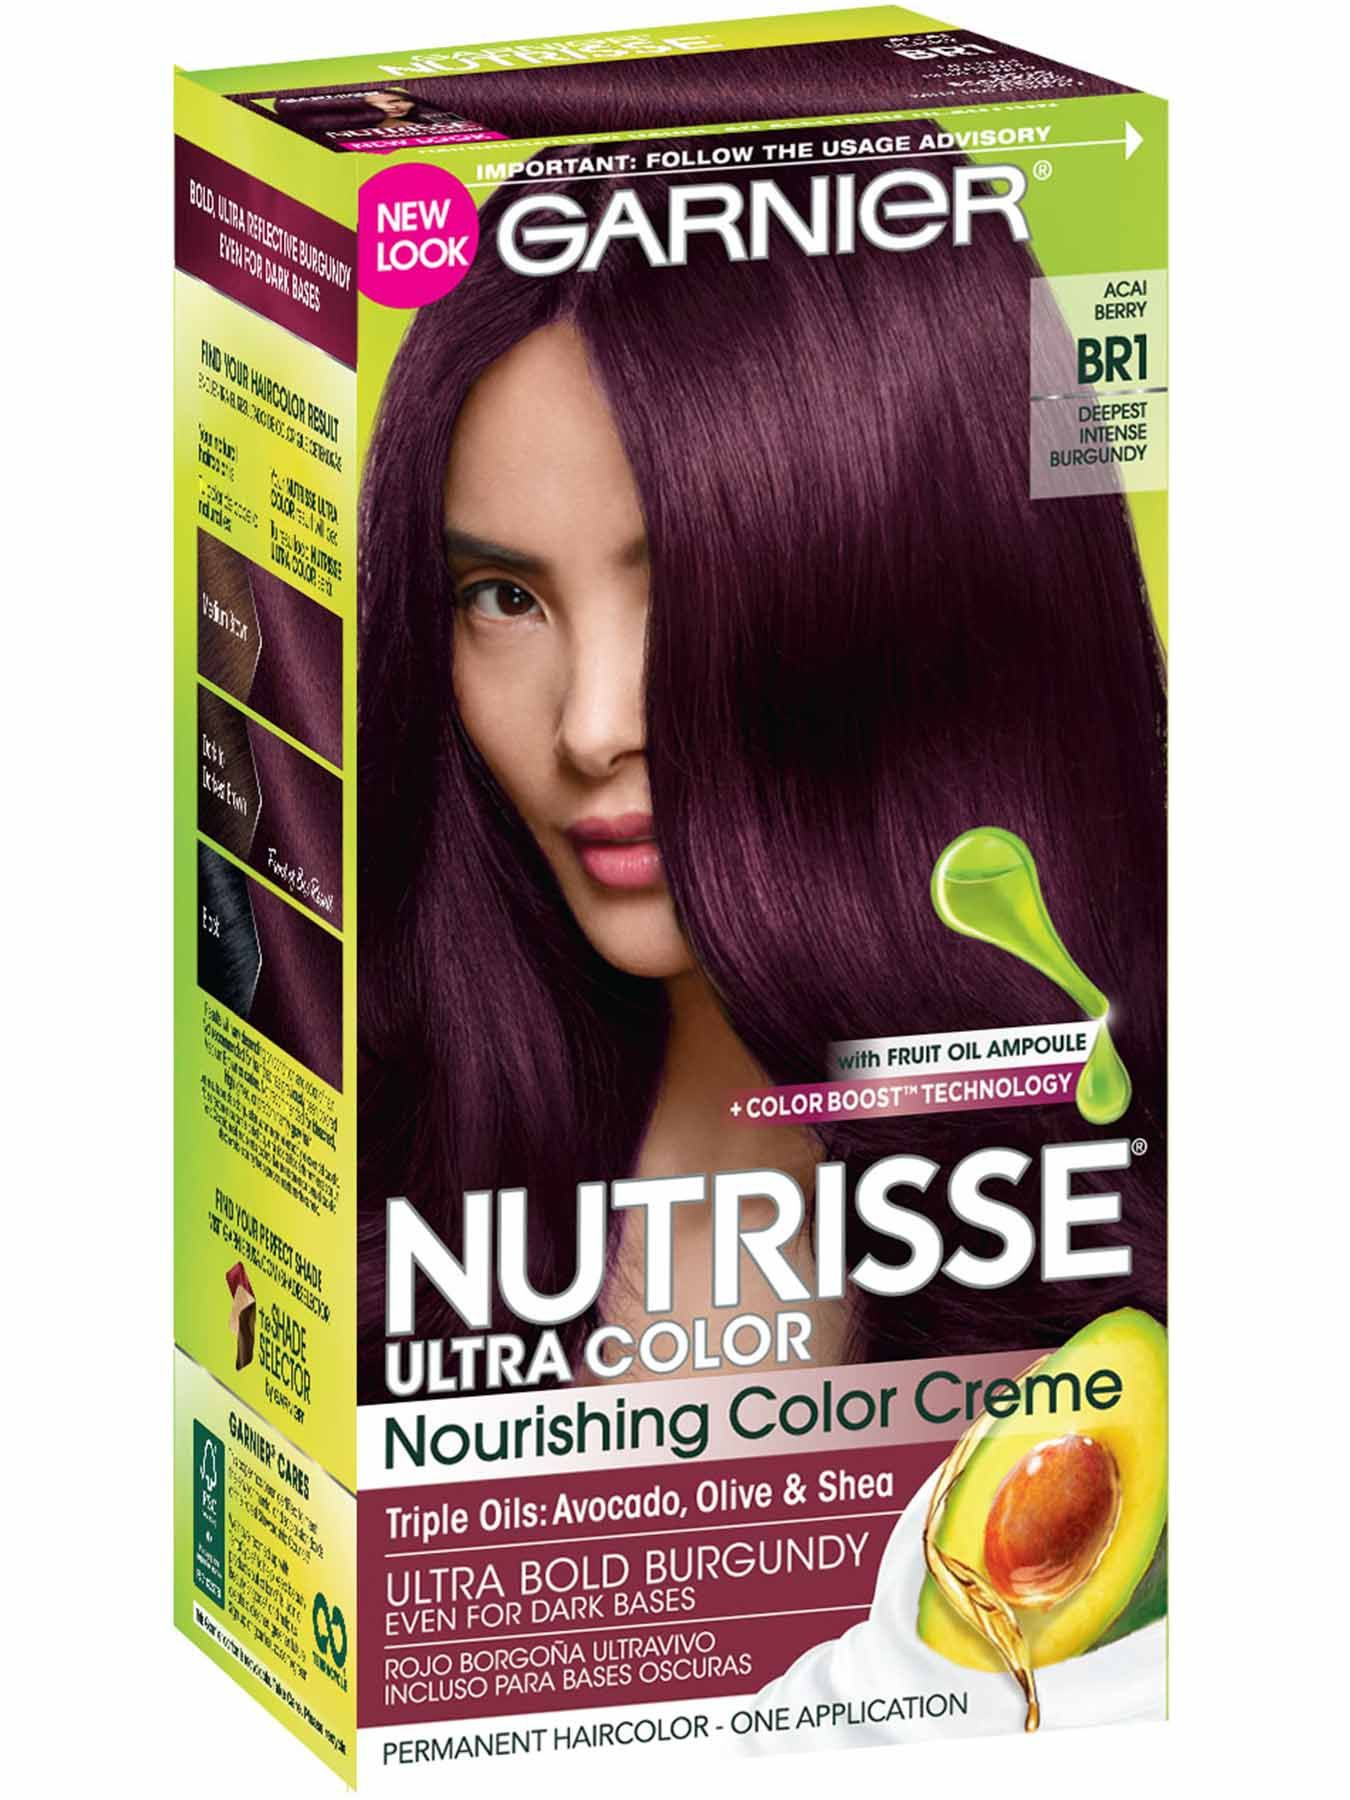 Br1 Deepest Intense Burgundy In 2020 Burgundy Hair Hair Color